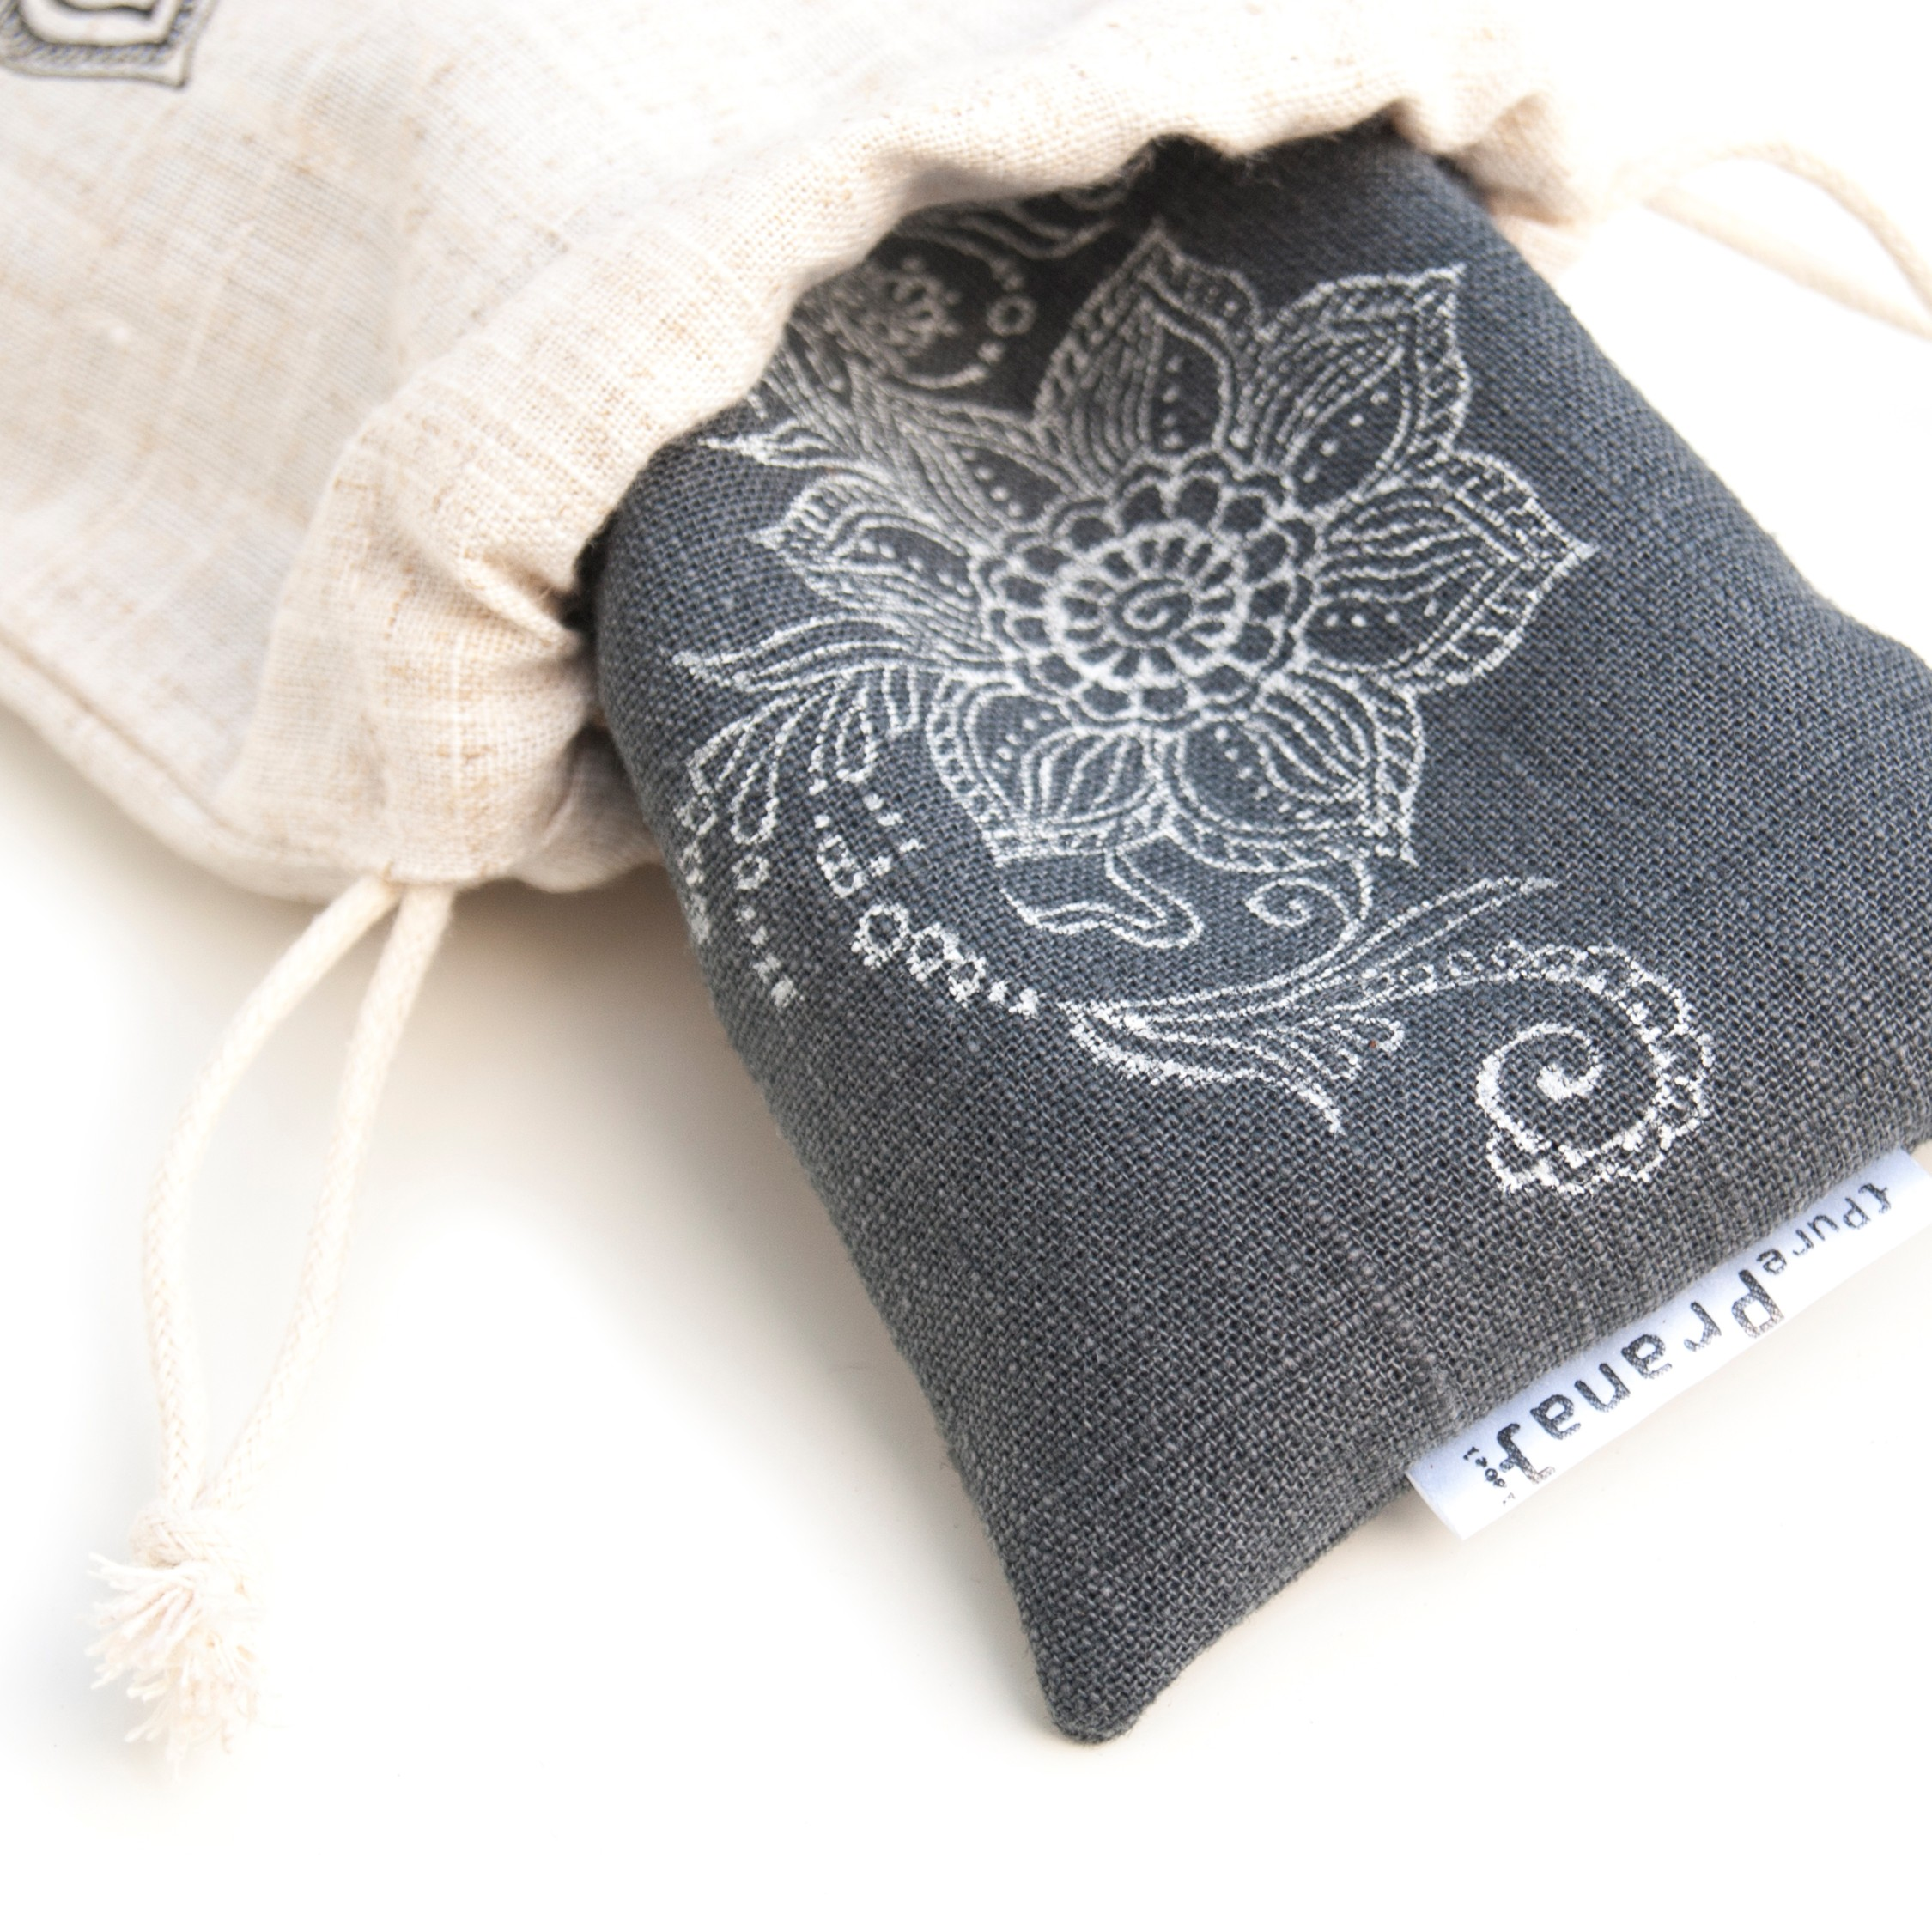 Lavender eye pillow Mehndi Floral comes with a pouch